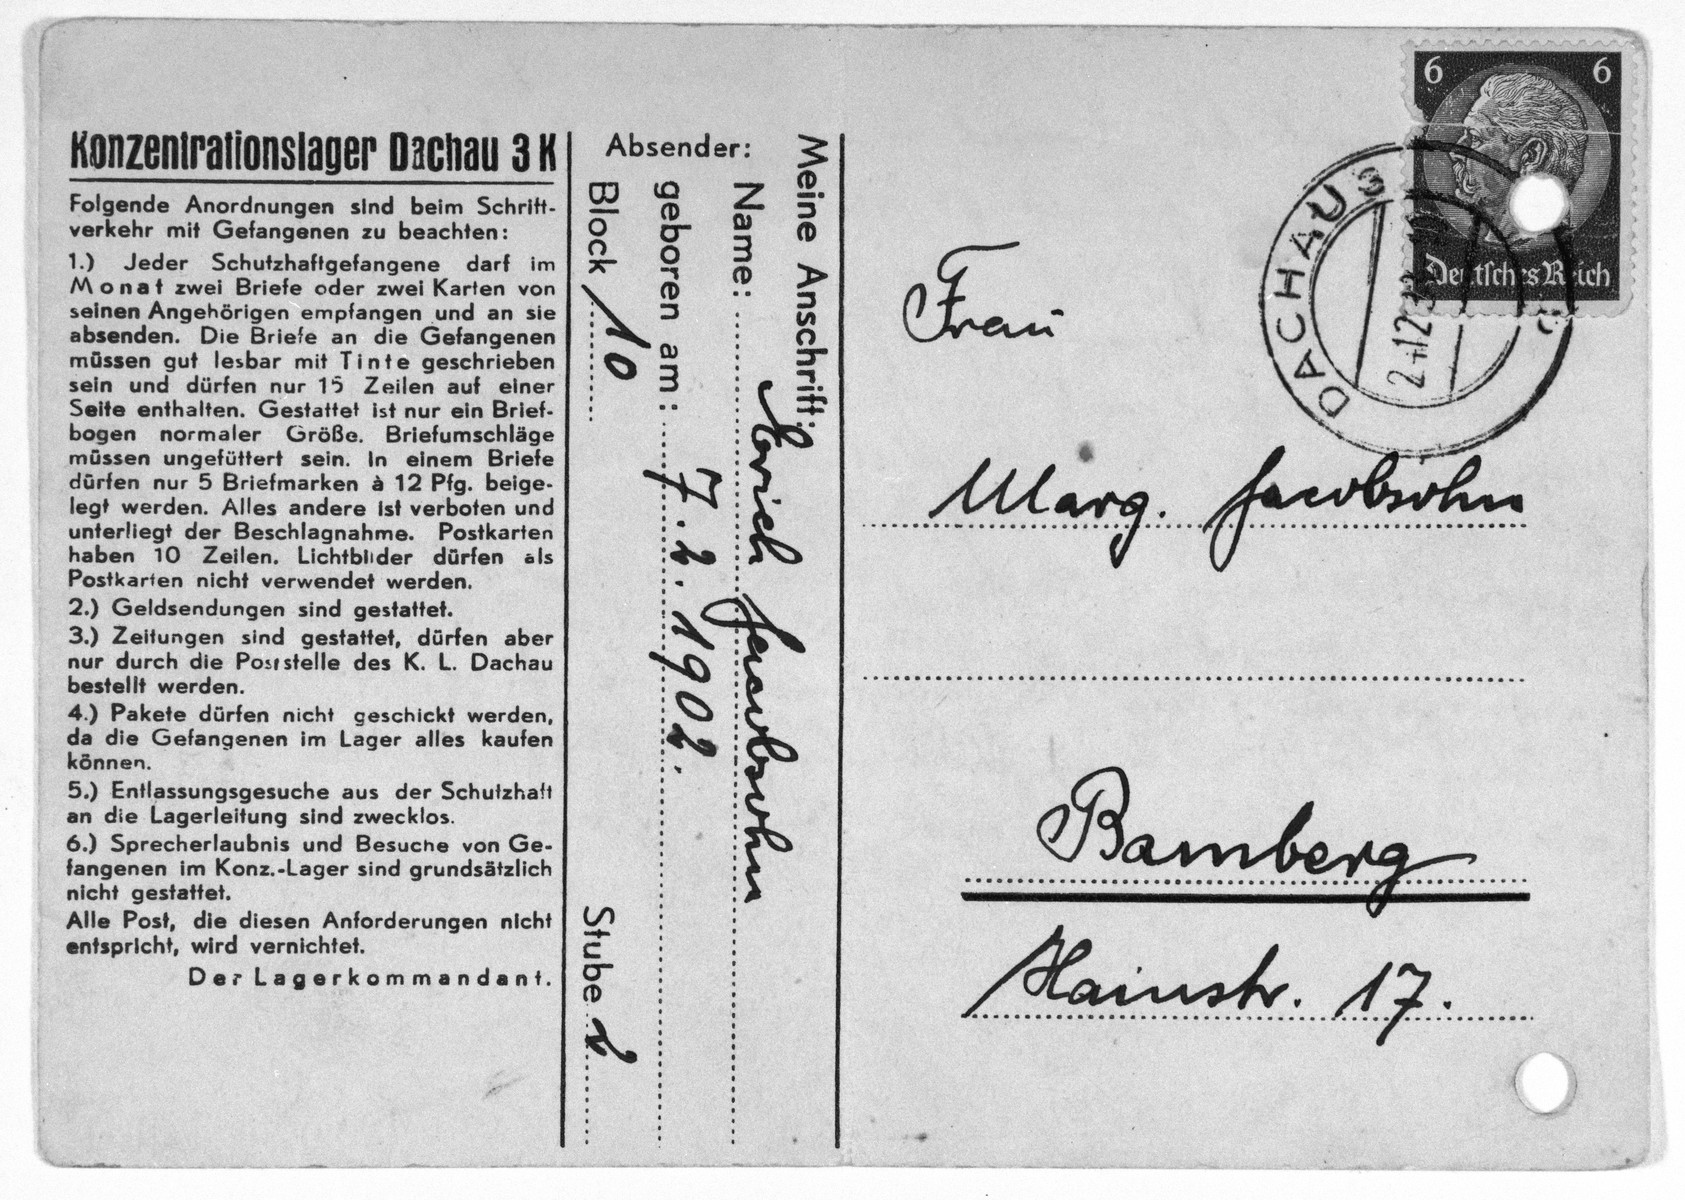 Postcard sent from the Dachau concentration camp by Jewish prisoner, Erich Jacobsohn, to his wife Margarete in Bamberg.  The postcard is dated December 17, 1938.